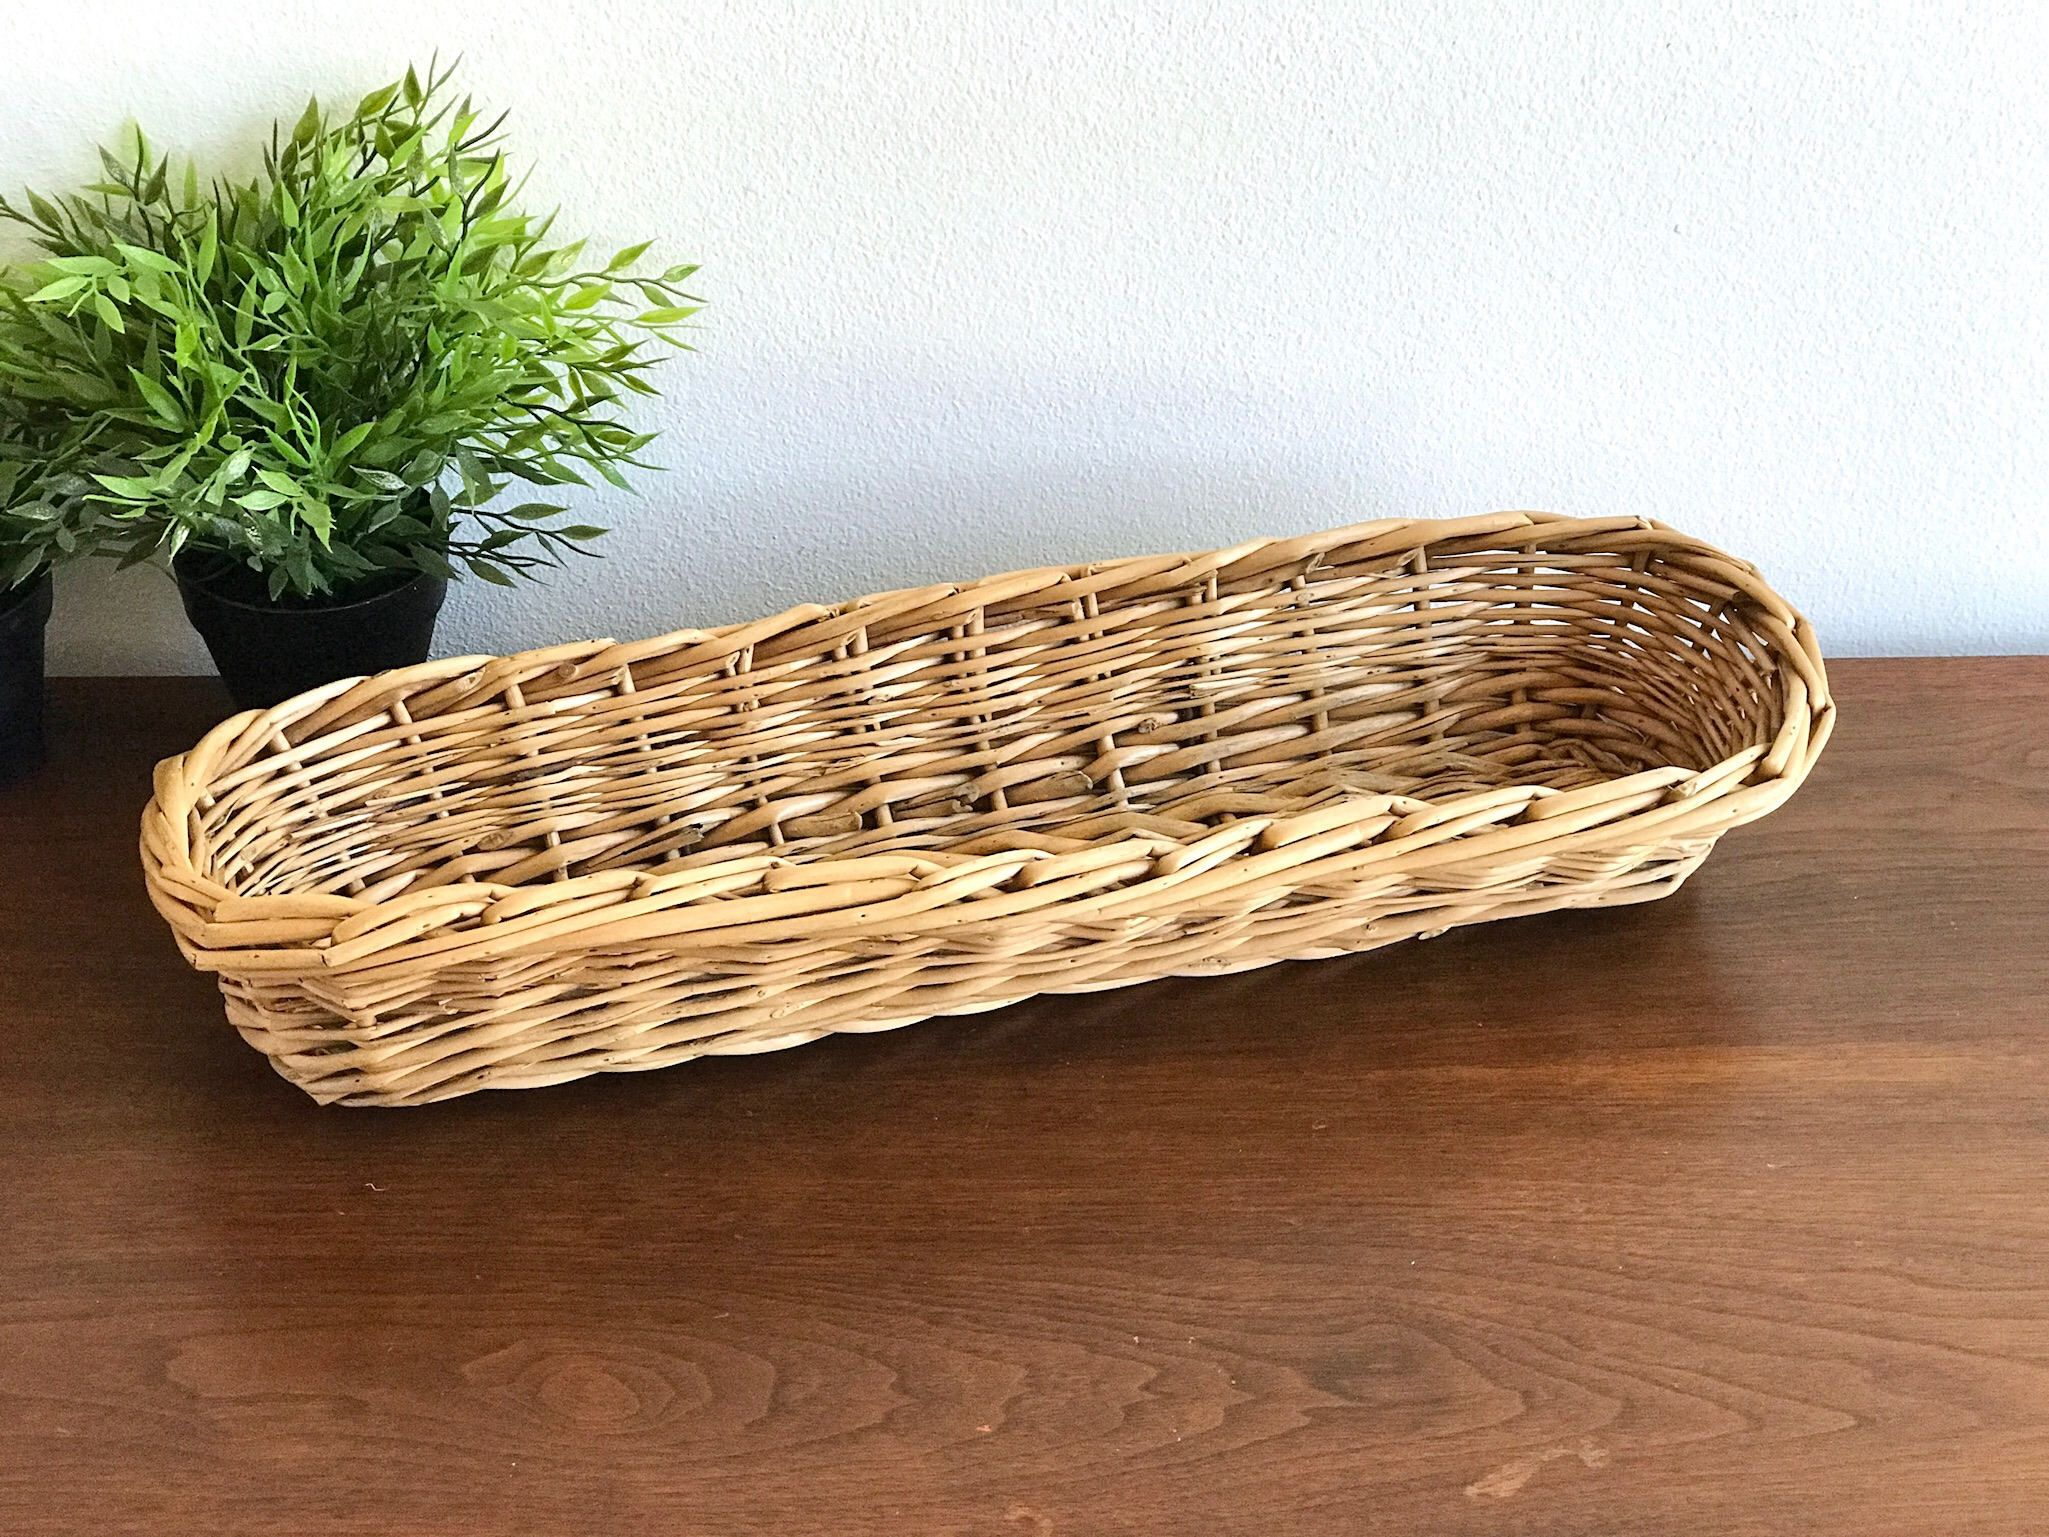 French Baguette Basket From France Authentic Long Narrow Bread Farmhouse Boulangerie